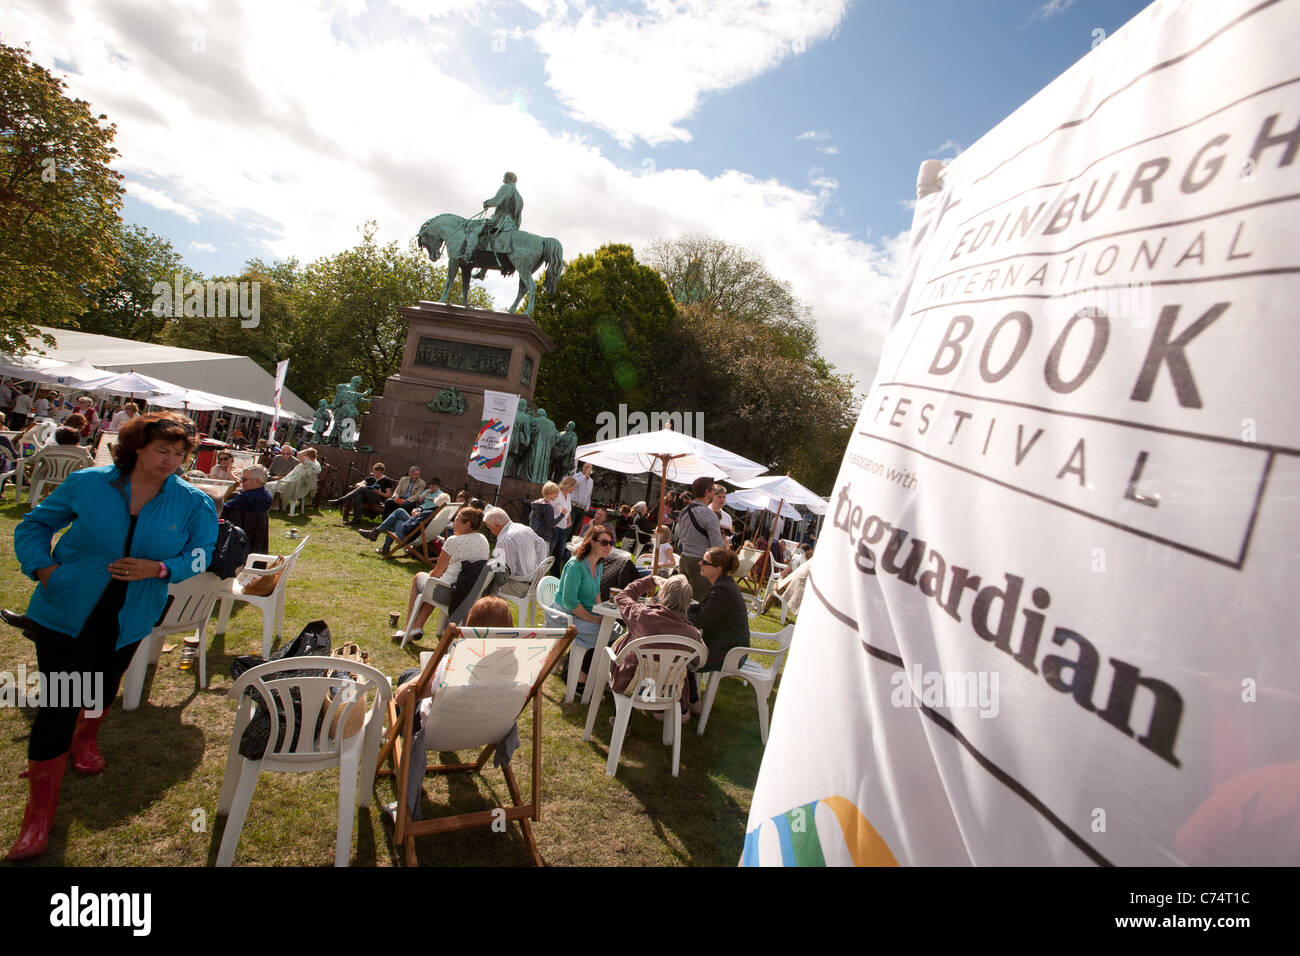 the annual Edinburgh International Book Festival, Charlotte Square, Edinburgh, Scotland. - Stock Image